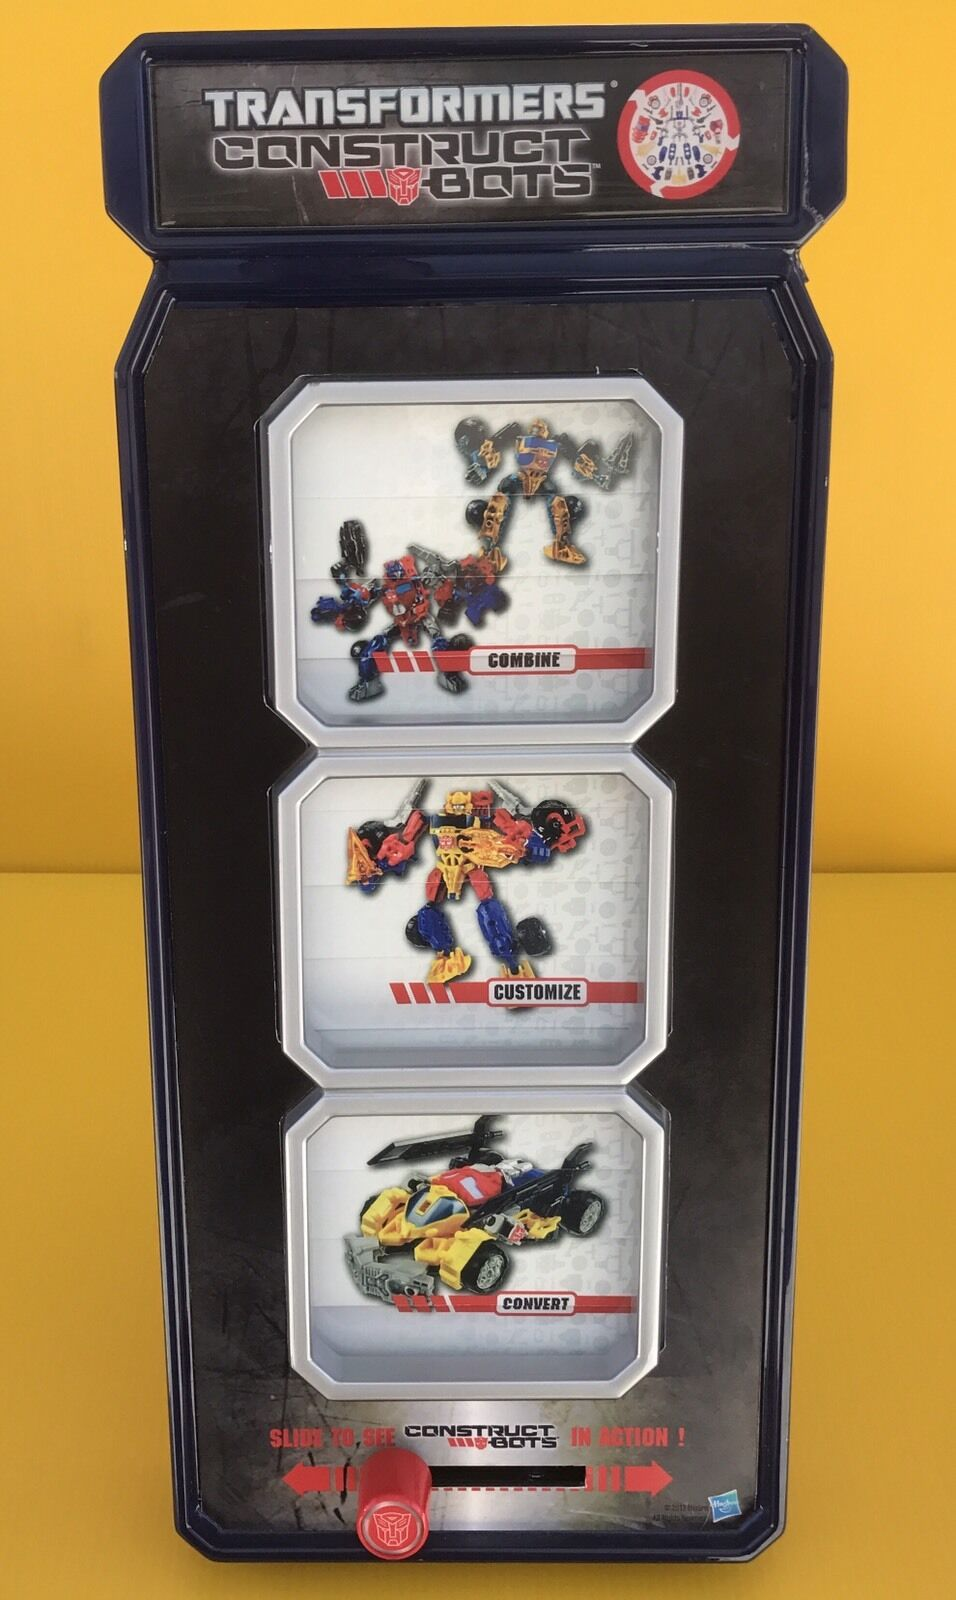 Transformers Construct Bots - Slide To See In Action Display Hasbro -See Details